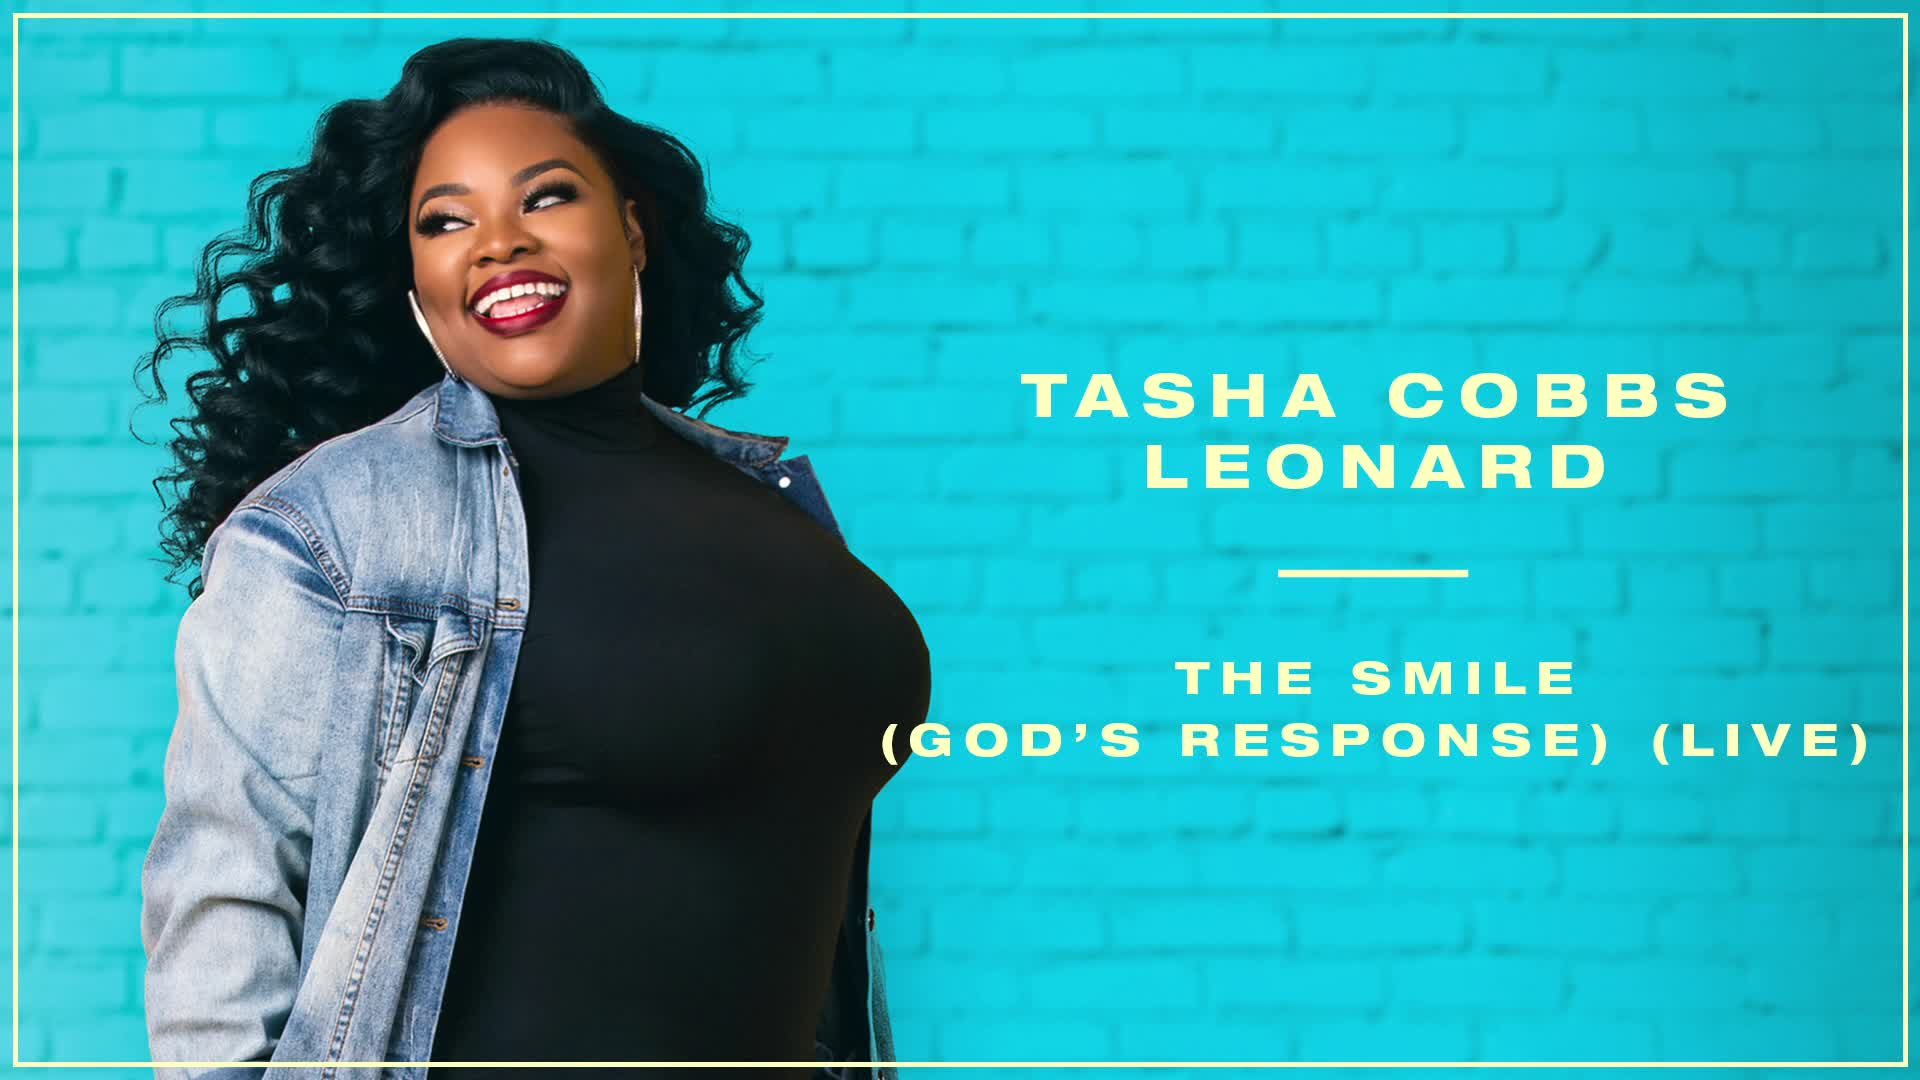 Tasha Cobbs Leonard - The Smile (God's Response)